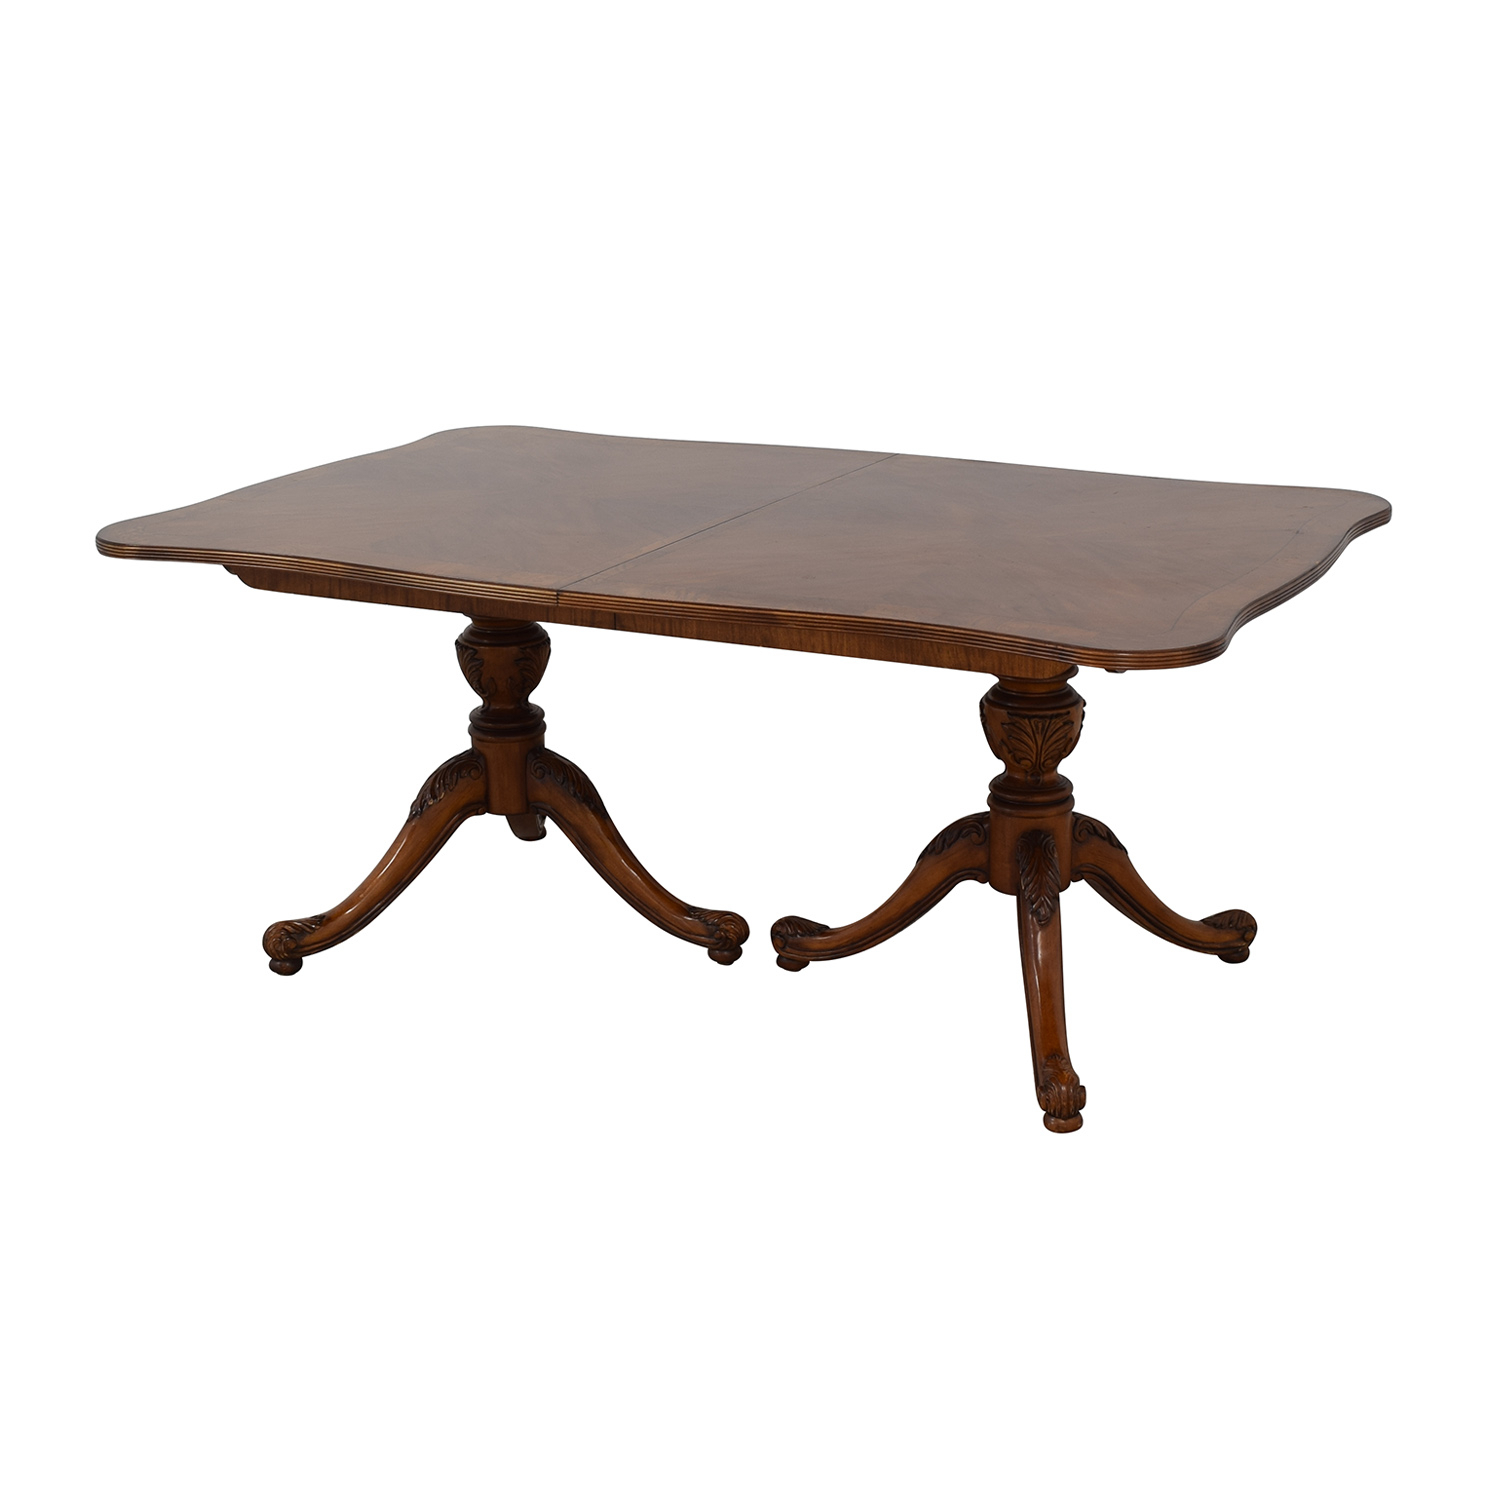 76% Off – Drexel Heritage Drexel Heritage Dining Table / Tables Within Current Mahogany Shayne Drop Leaf Kitchen Tables (Photo 16 of 25)